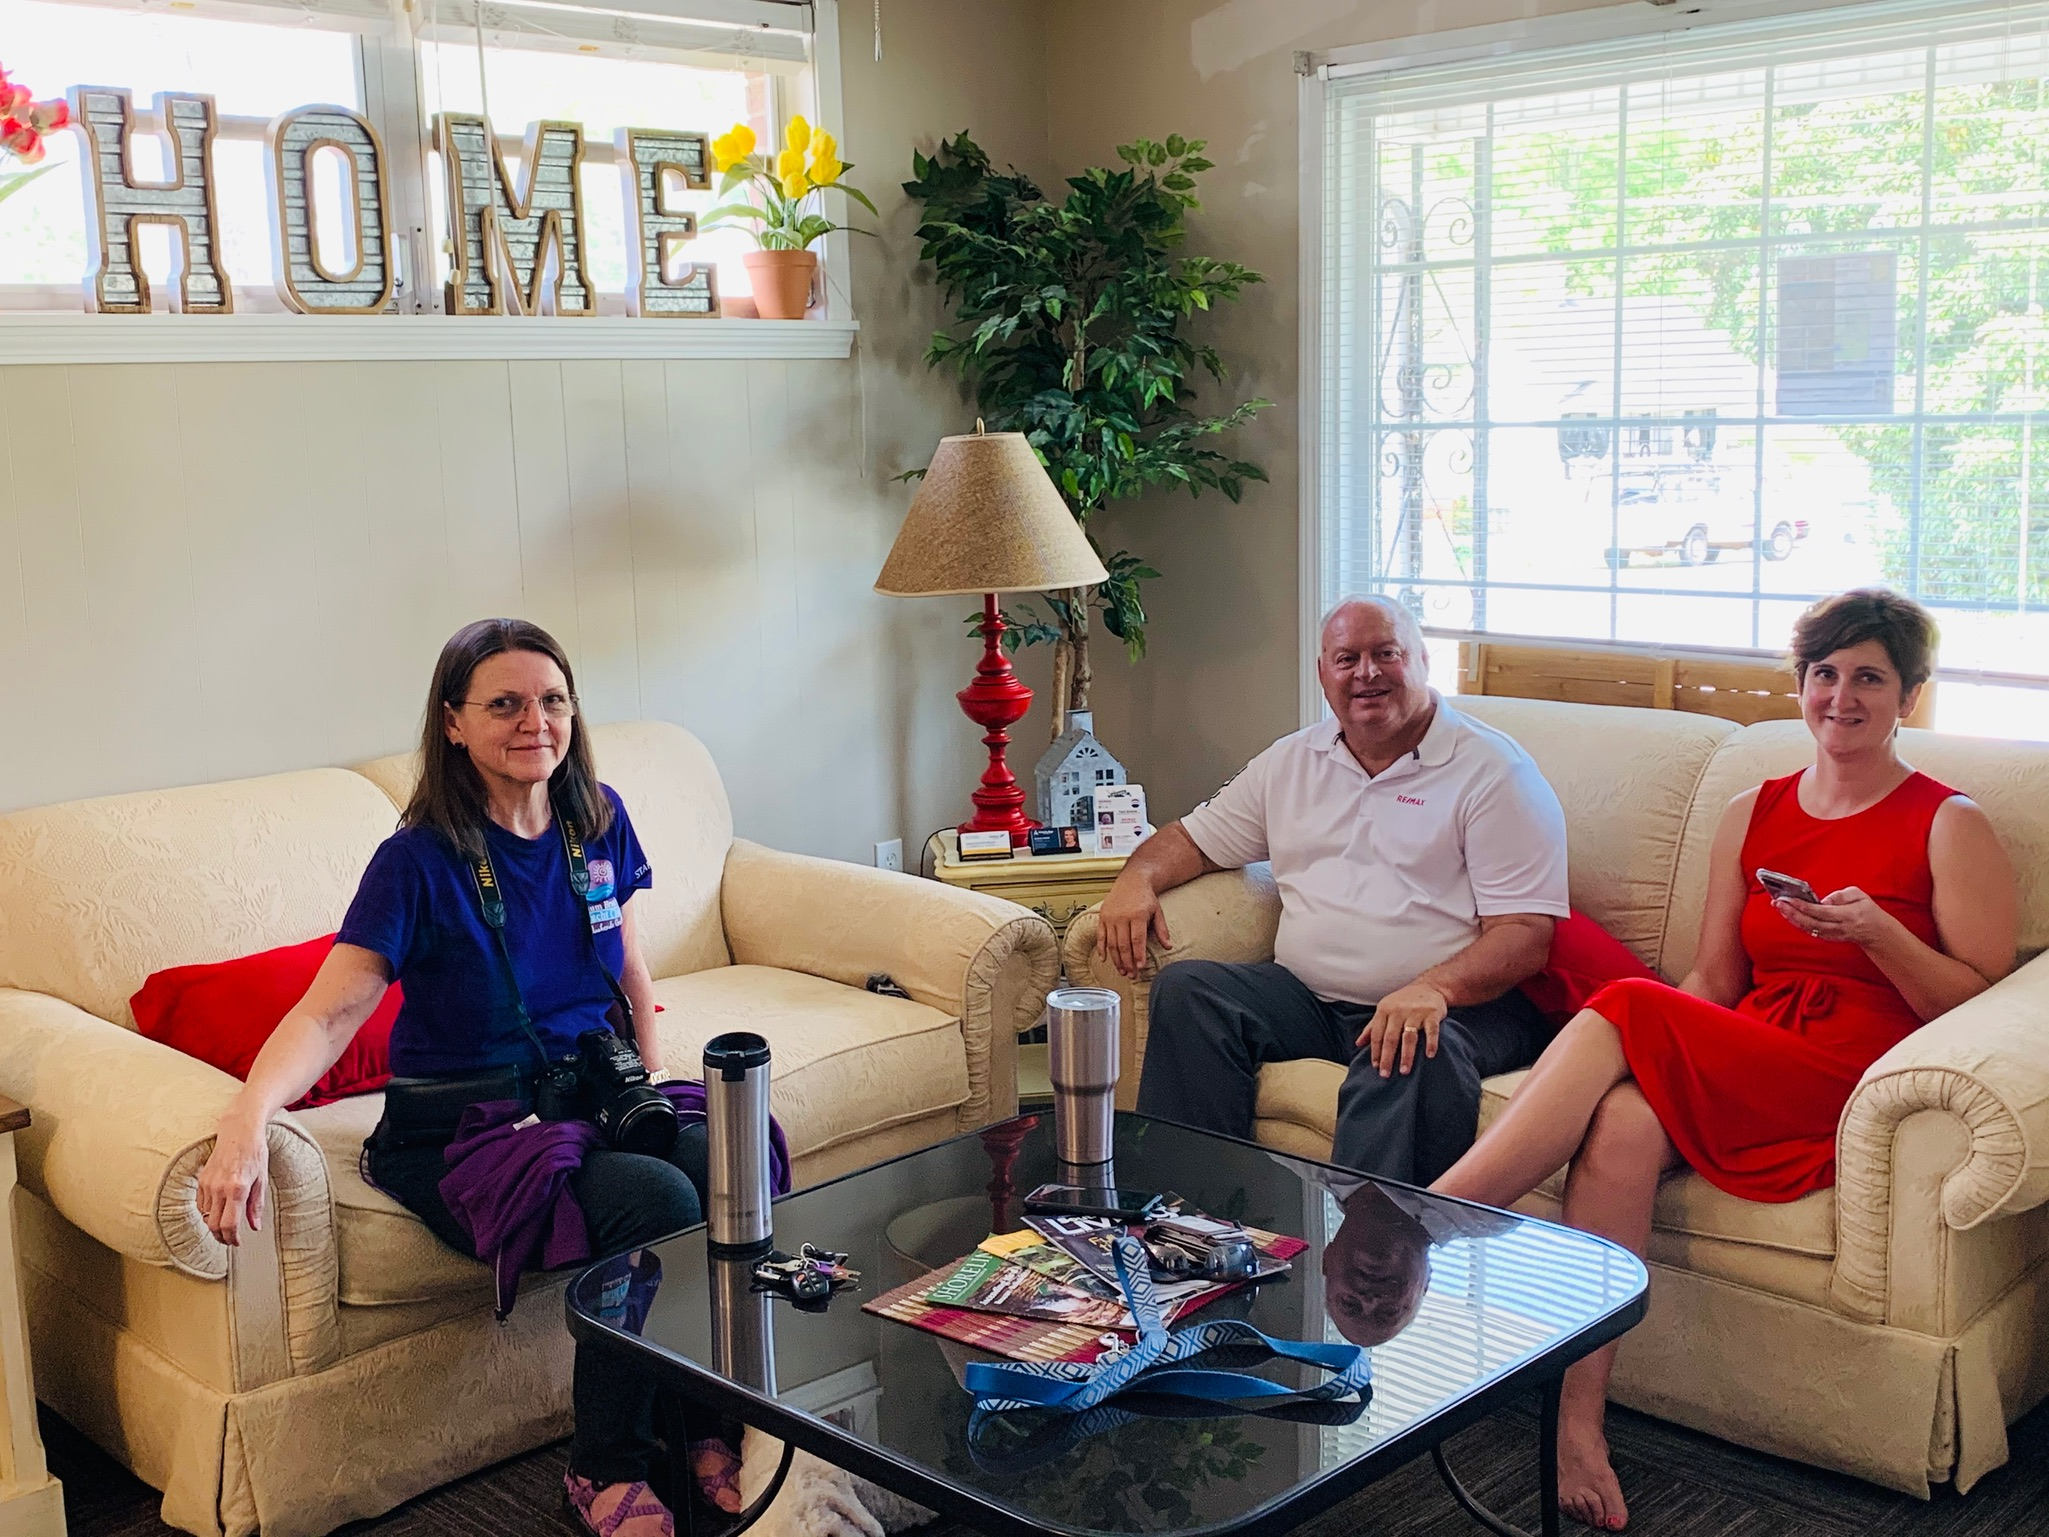 Small town service and a feeling of home as photographer and Plum Branch Yacht Club owner Bea McClain visits with RE/MAX Leisurely Living owners Cara and Russ in the lobby of their new building on E. Gold St.